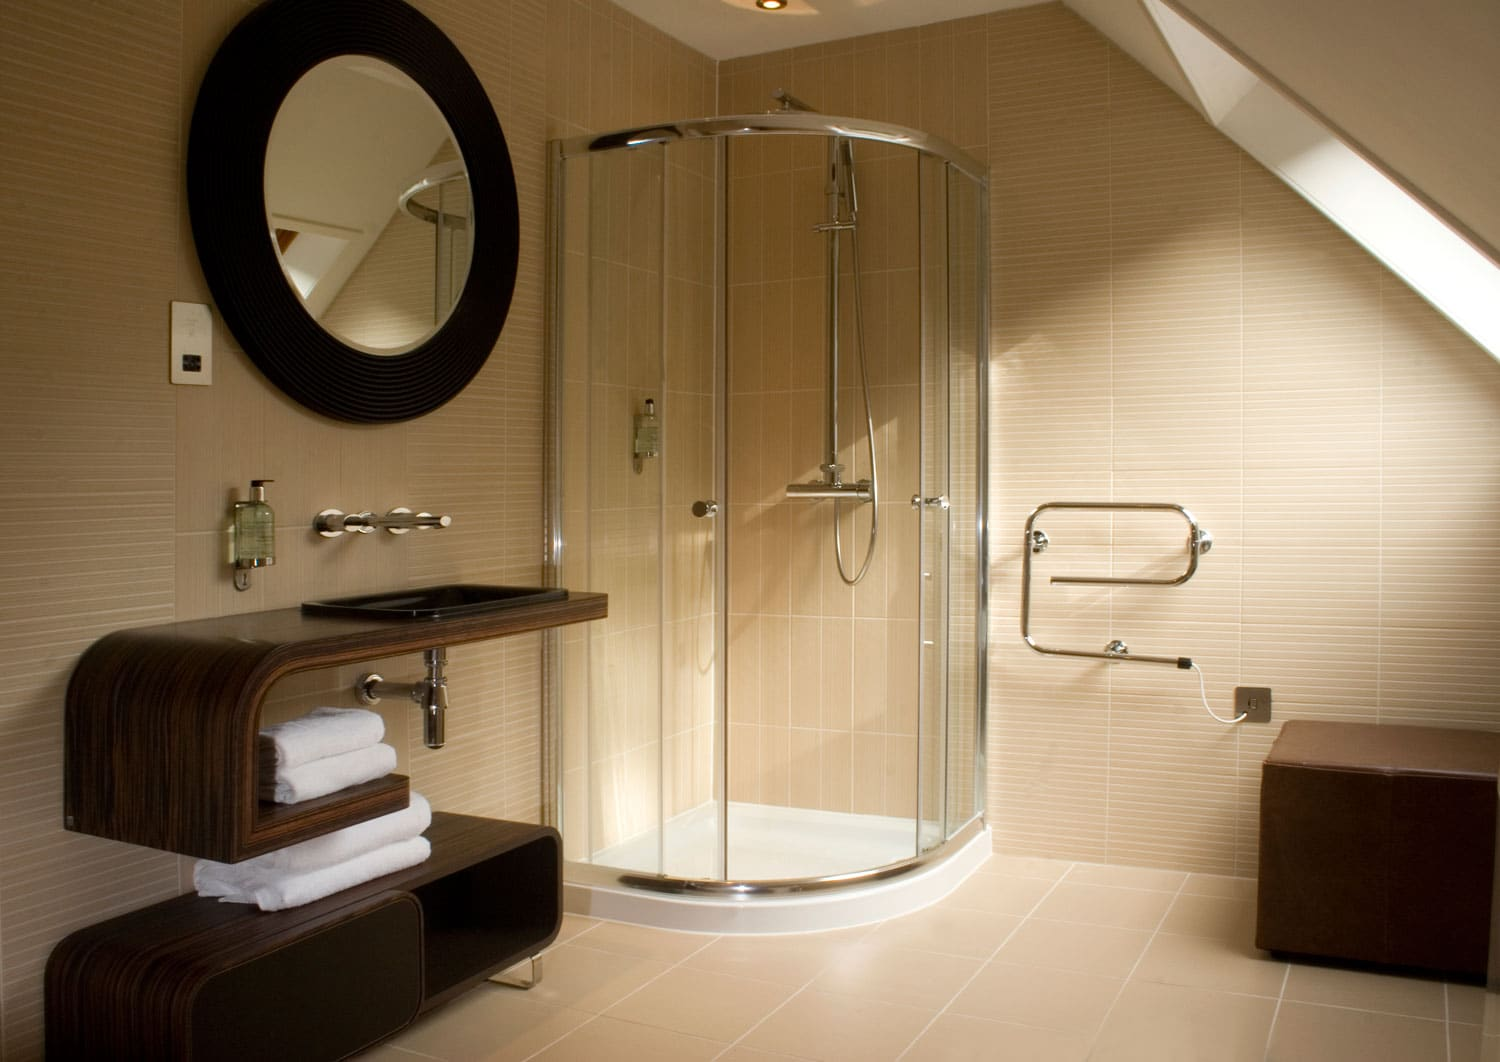 Inn luxury bathroom